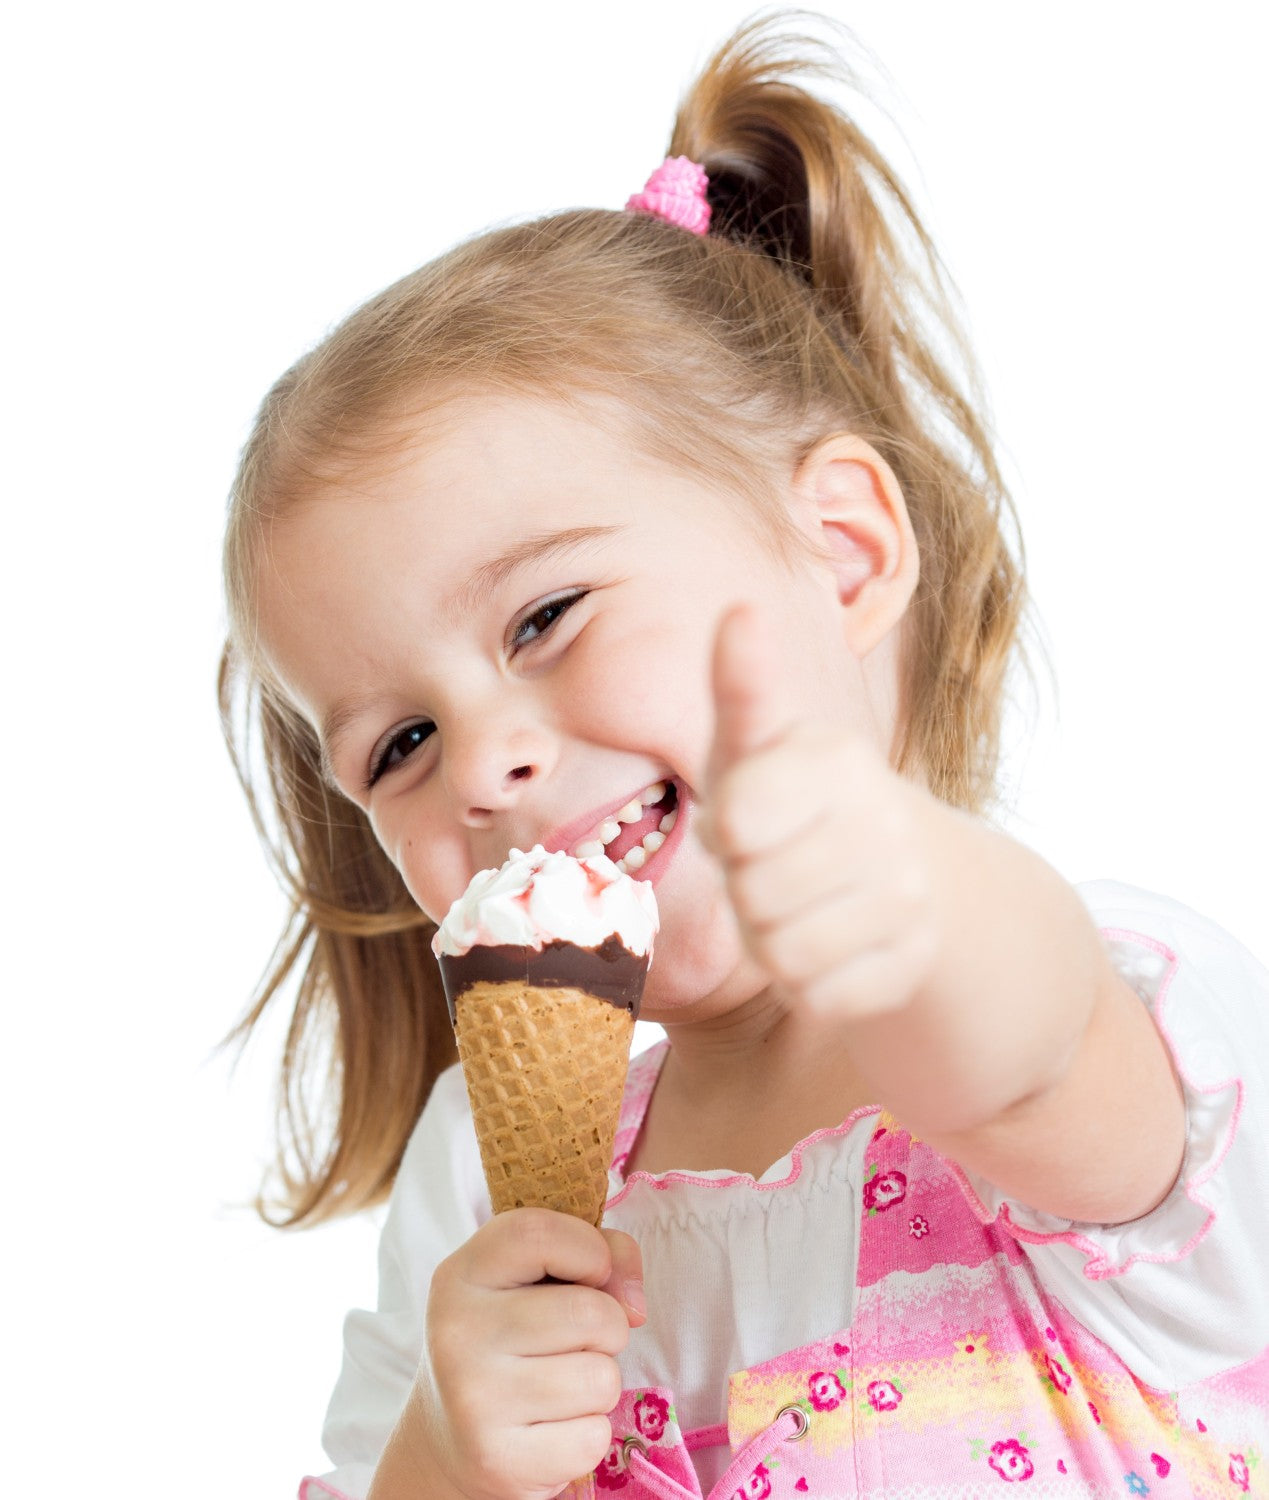 happy girl eating an ice cream treat and giving a thumbs up